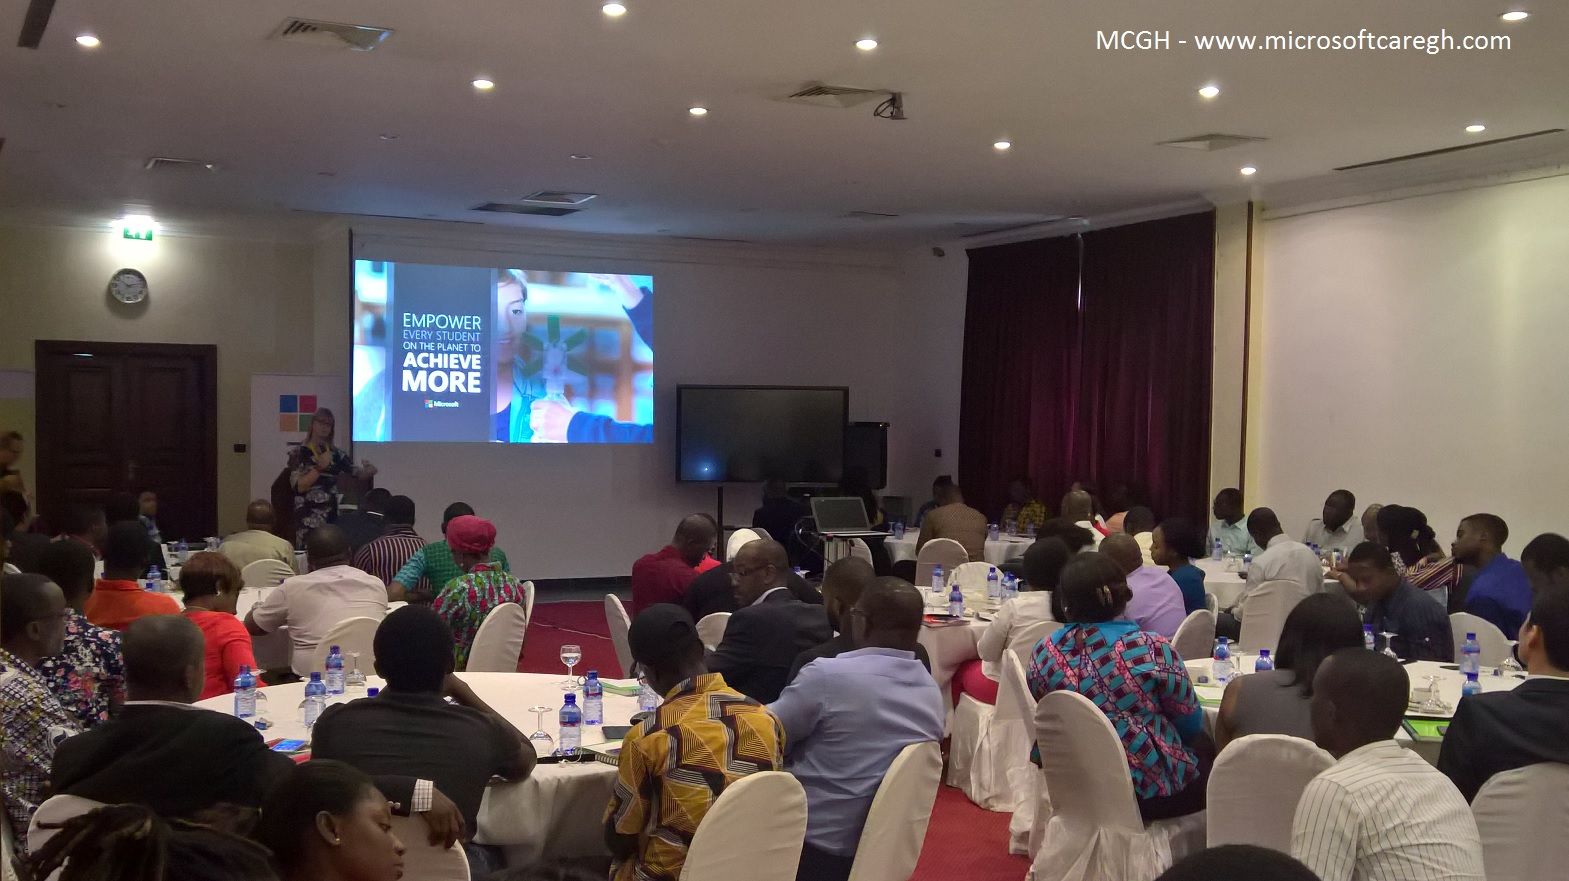 top 10 articles from 2020 mcgh www.microsoftcaregh.com